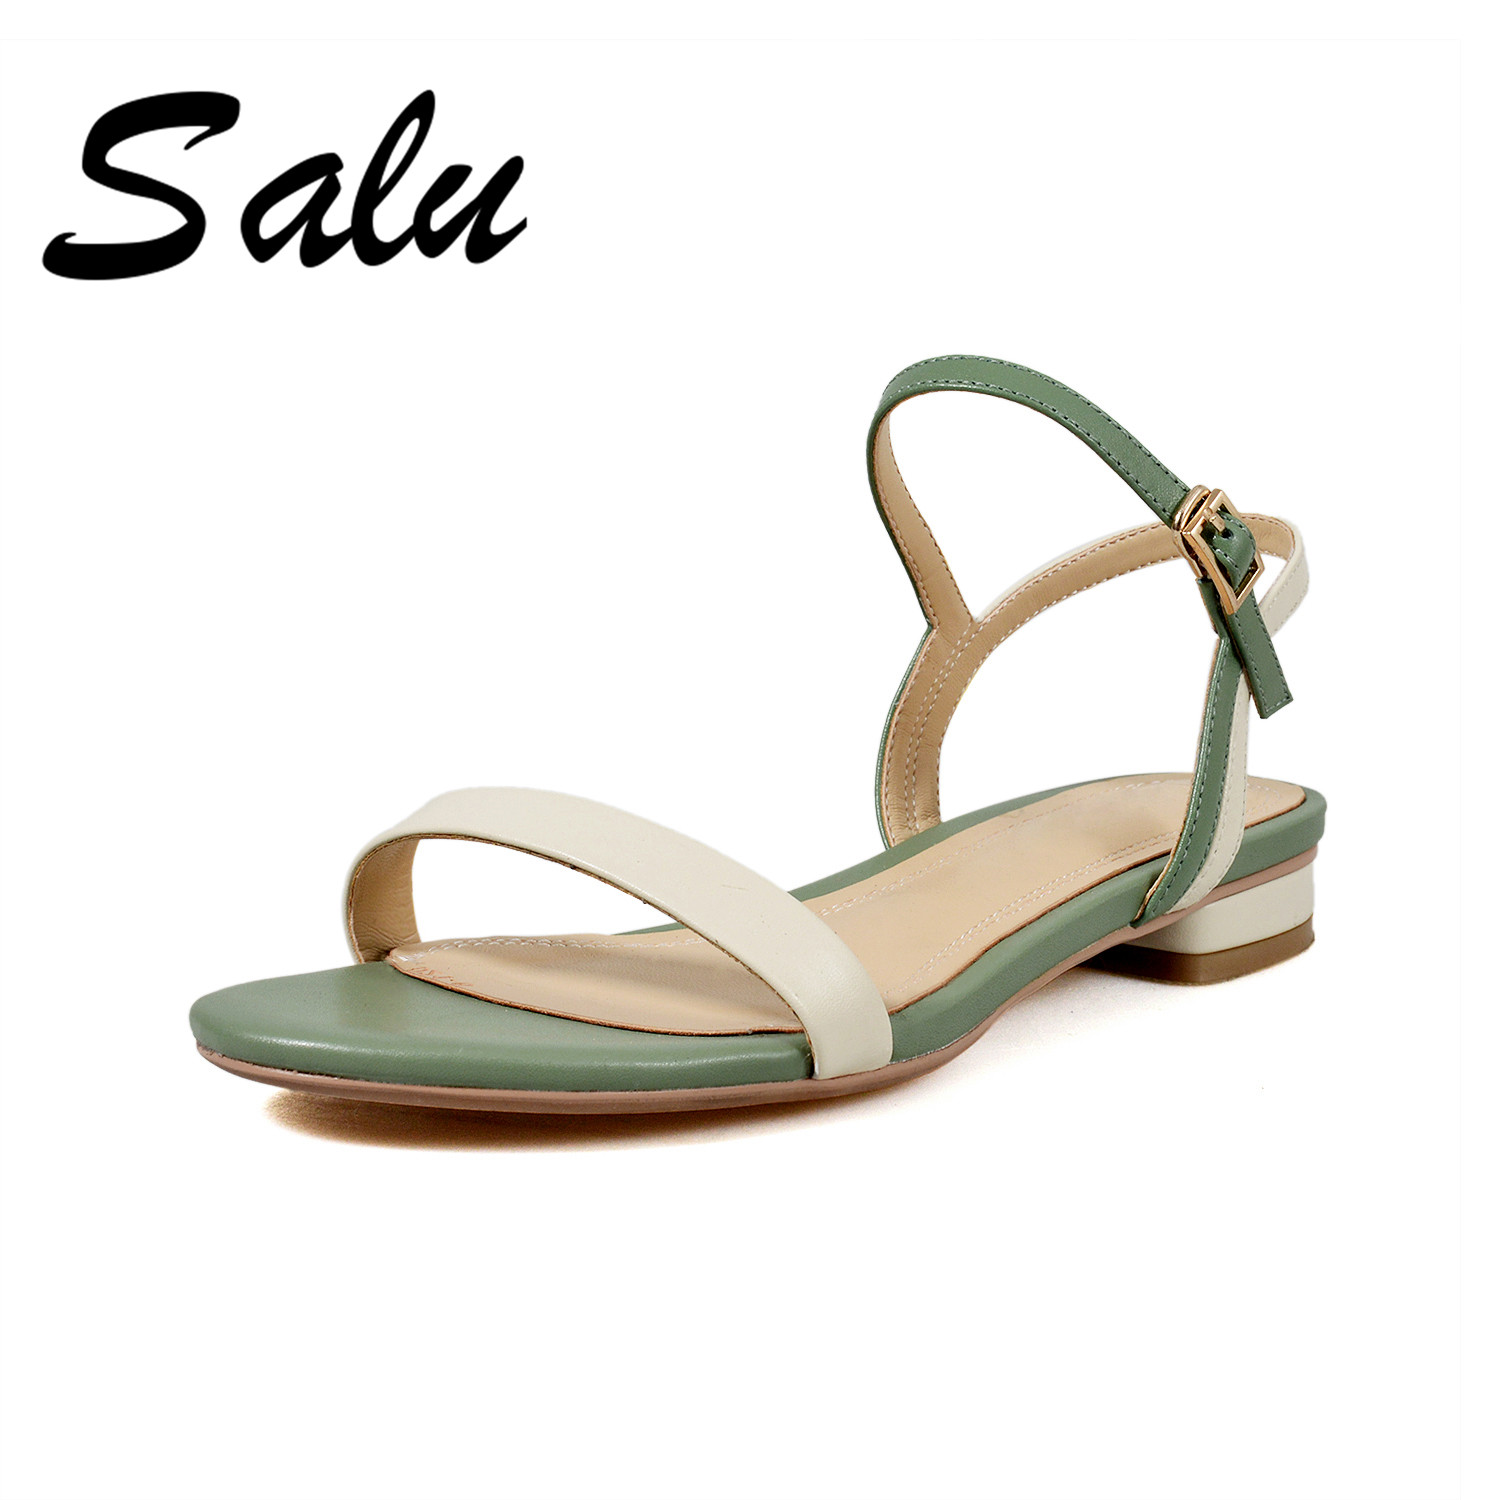 Salu sandalia feminina 2019 genuine leather women sandals woman flip flops low heels women shoes summer comfortable slipperSalu sandalia feminina 2019 genuine leather women sandals woman flip flops low heels women shoes summer comfortable slipper